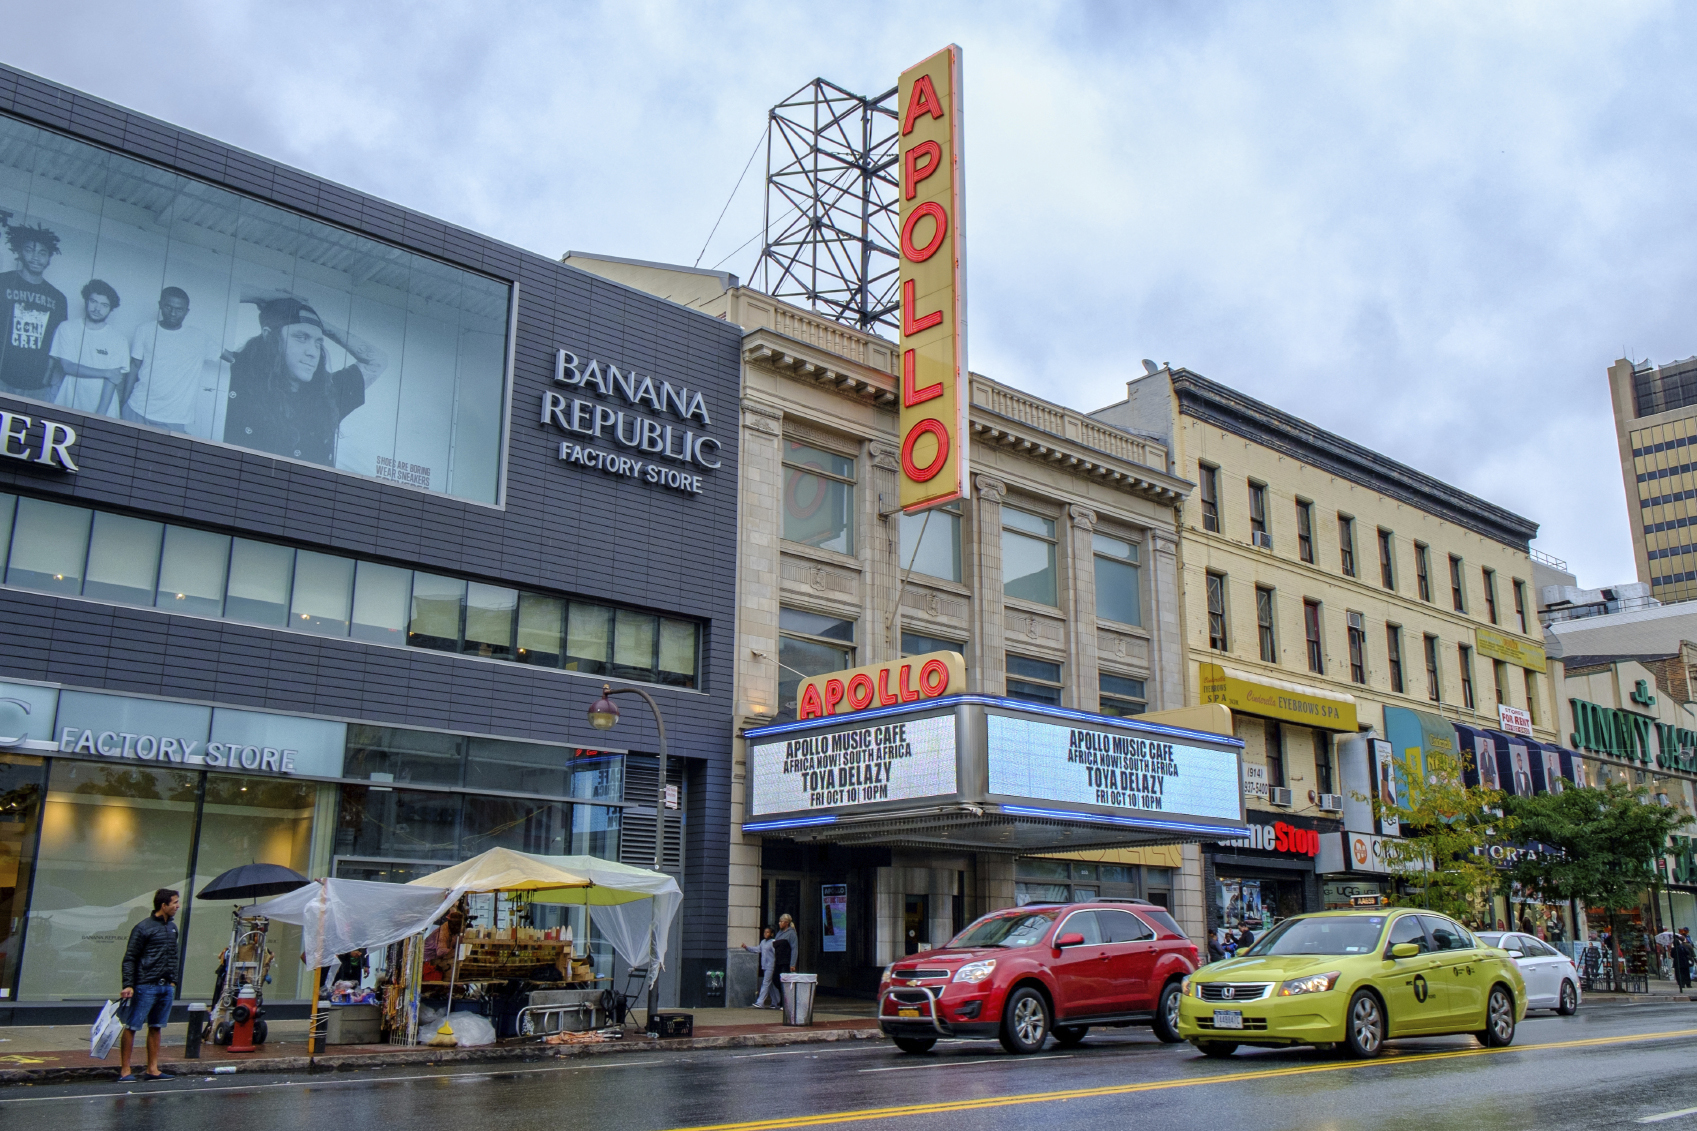 5 Reasons We Love Harlem